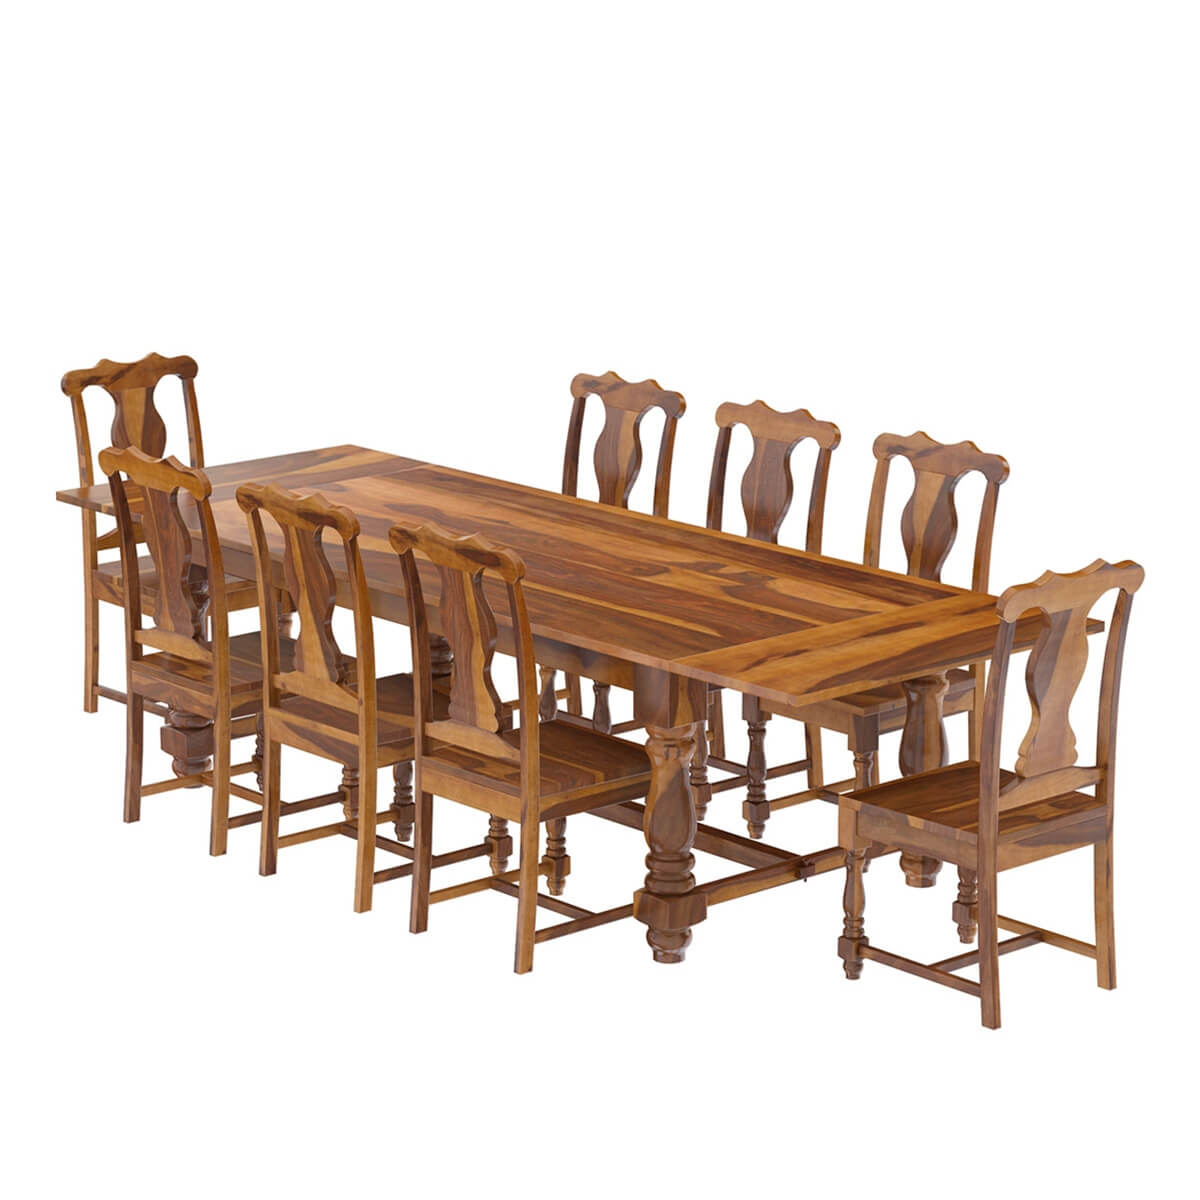 Rustic Solid Wood Dining Table amp Chair Set Furniture w  : 48742 from www.sierralivingconcepts.com size 1200 x 1200 jpeg 149kB